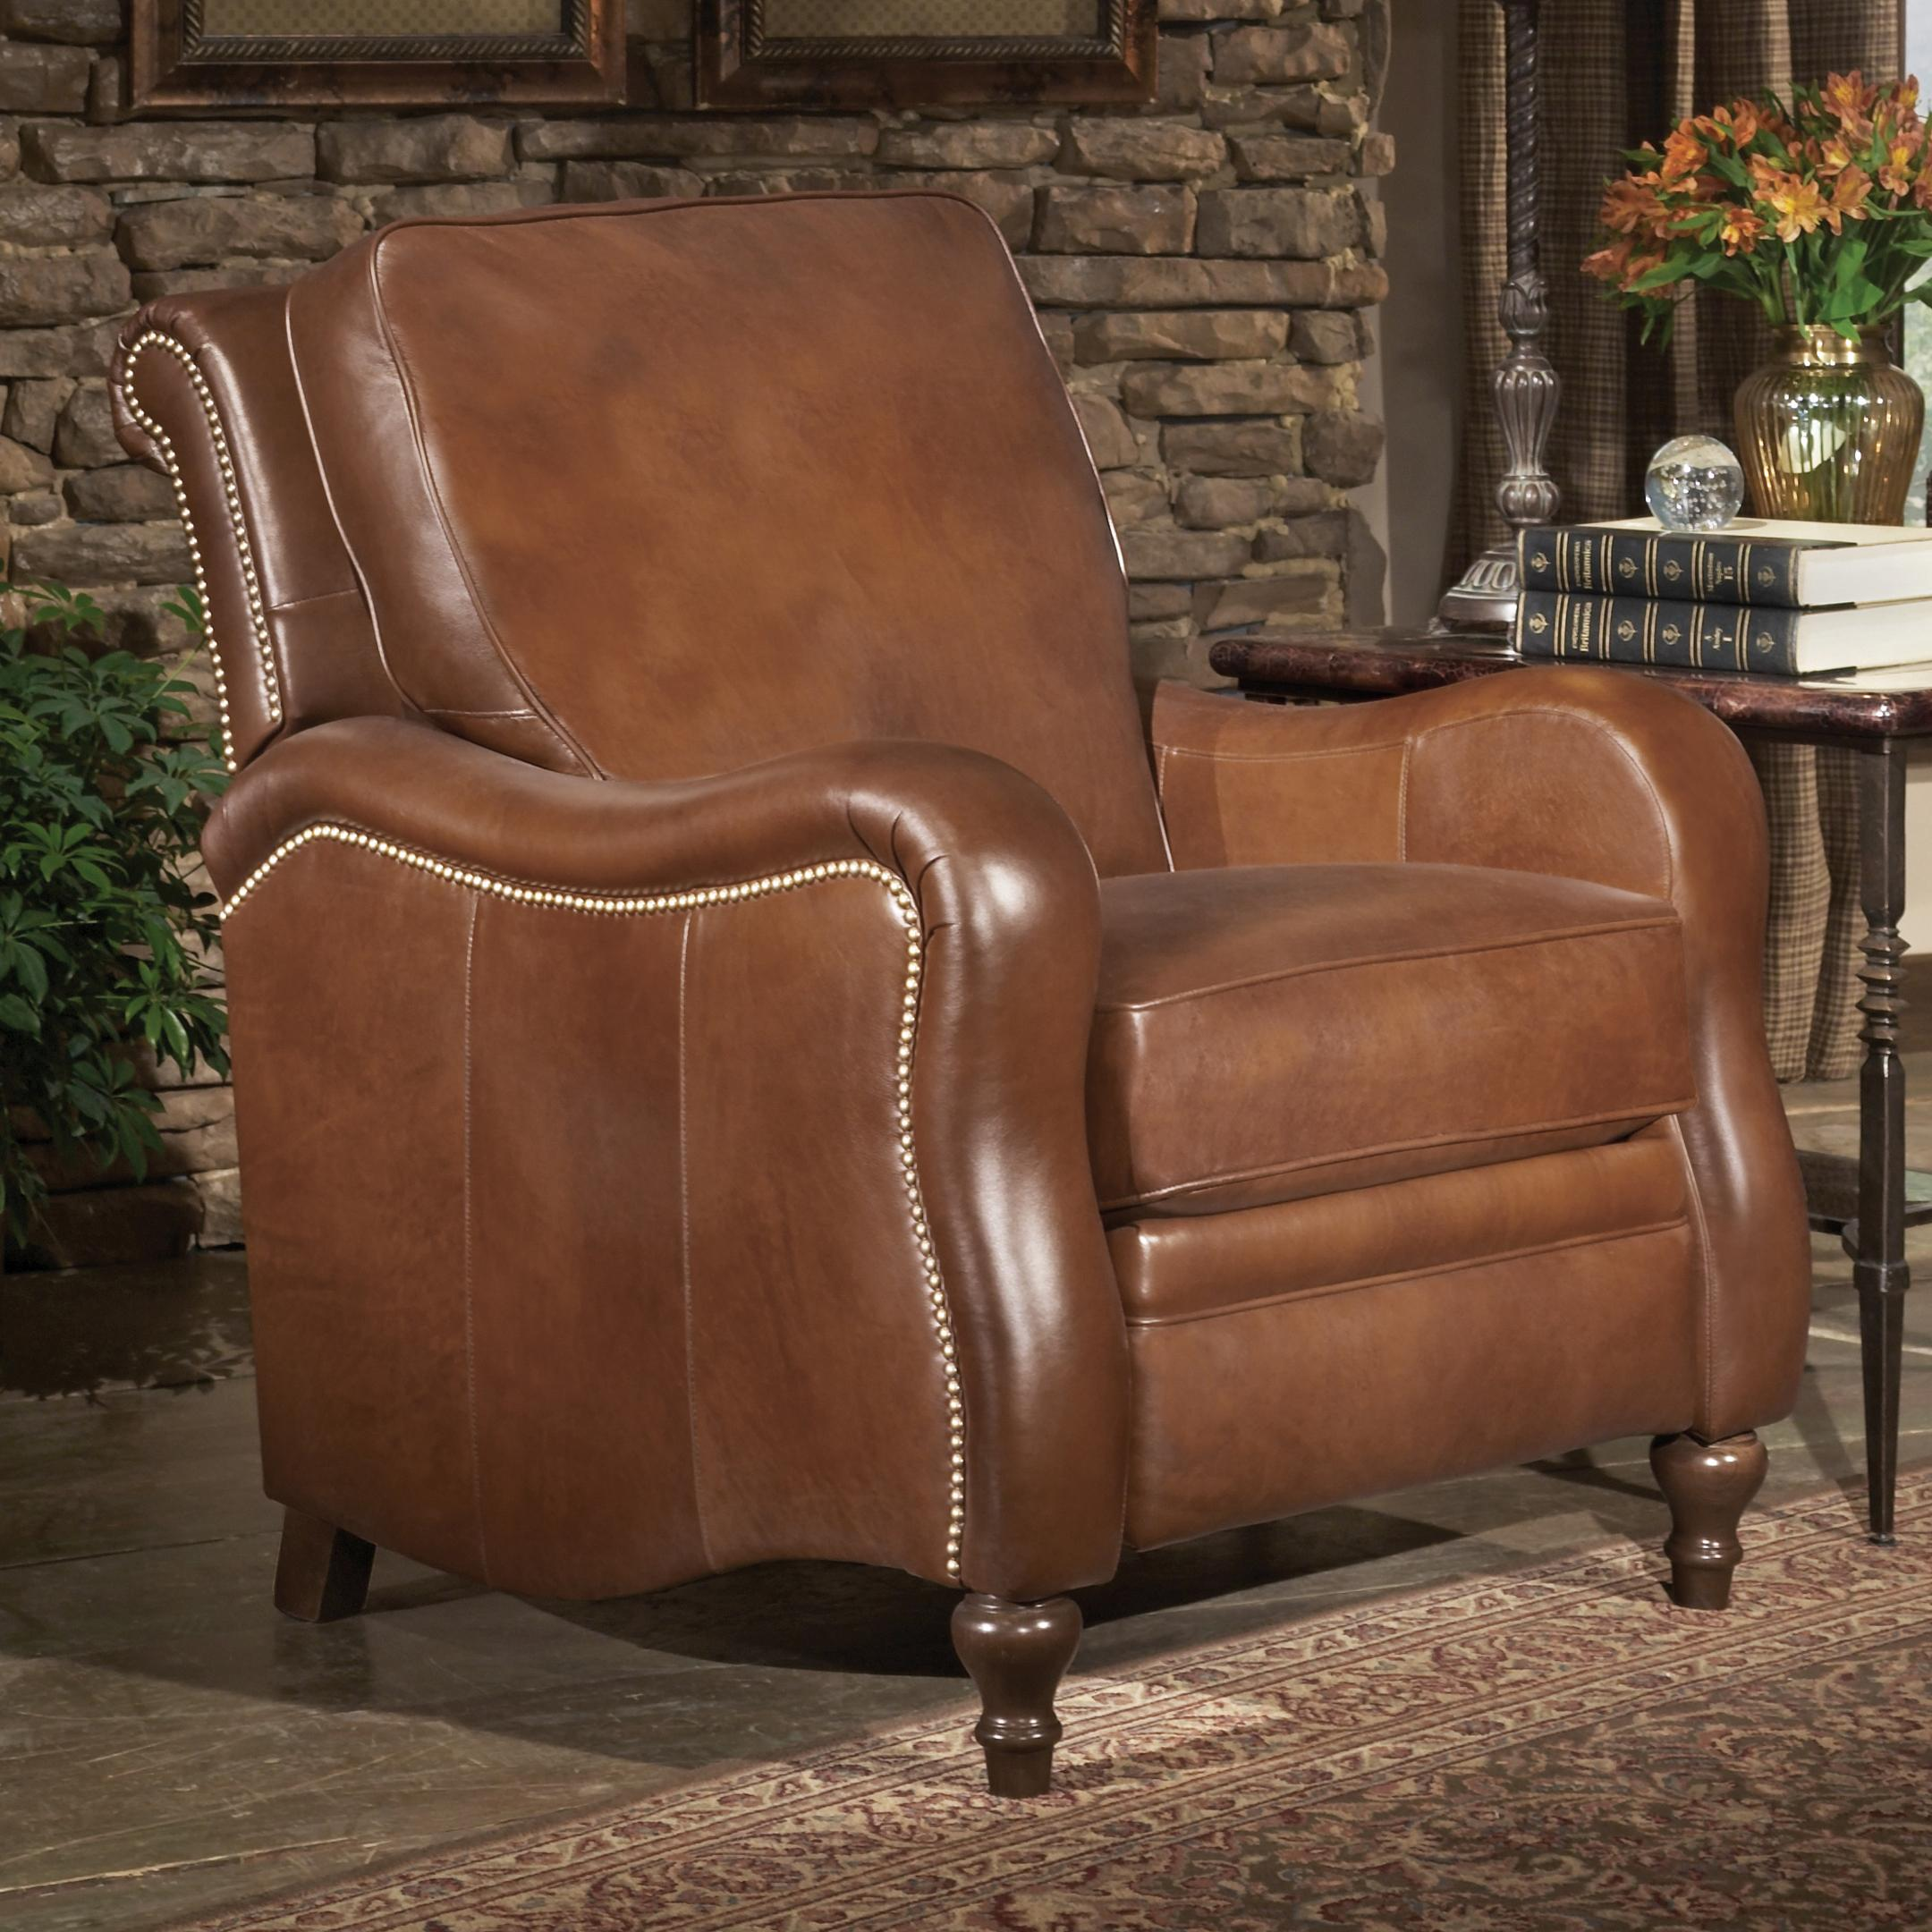 Smith Brothers Recliners Traditional High Leg Recliner - Item Number 724-33 L & Smith Brothers Recliners Traditional High Leg Recliner with ... islam-shia.org